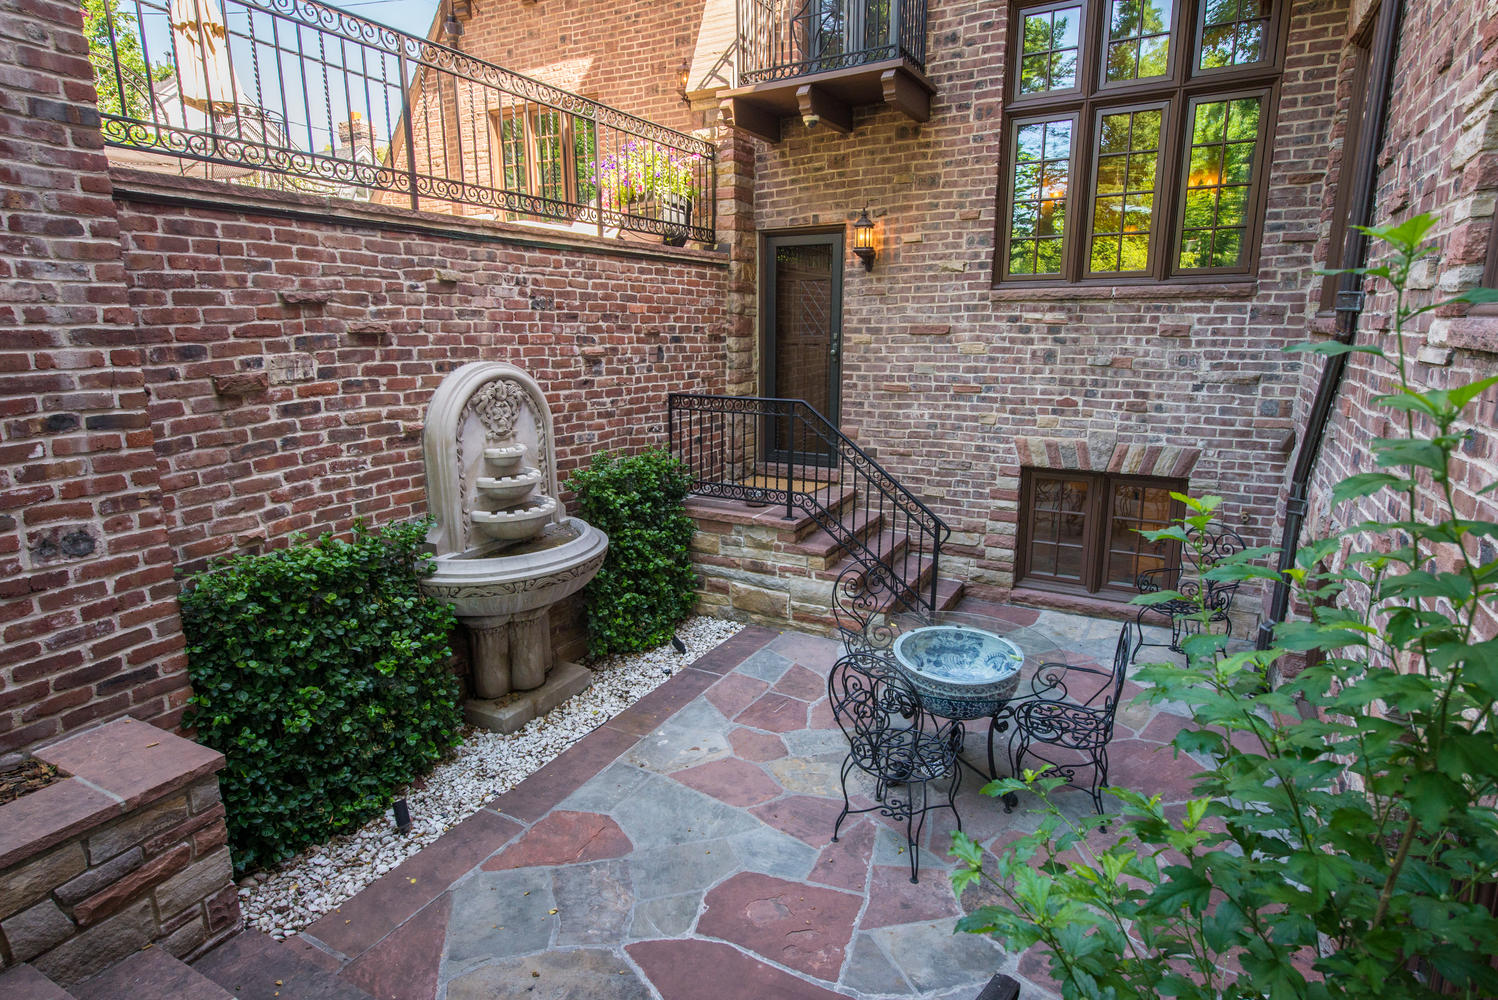 Additional photo for property listing at Spectacular Tudor on a Beautiful Half Acre in Historic Denver Country Club 177 Humboldt Street Denver, Colorado 80218 United States